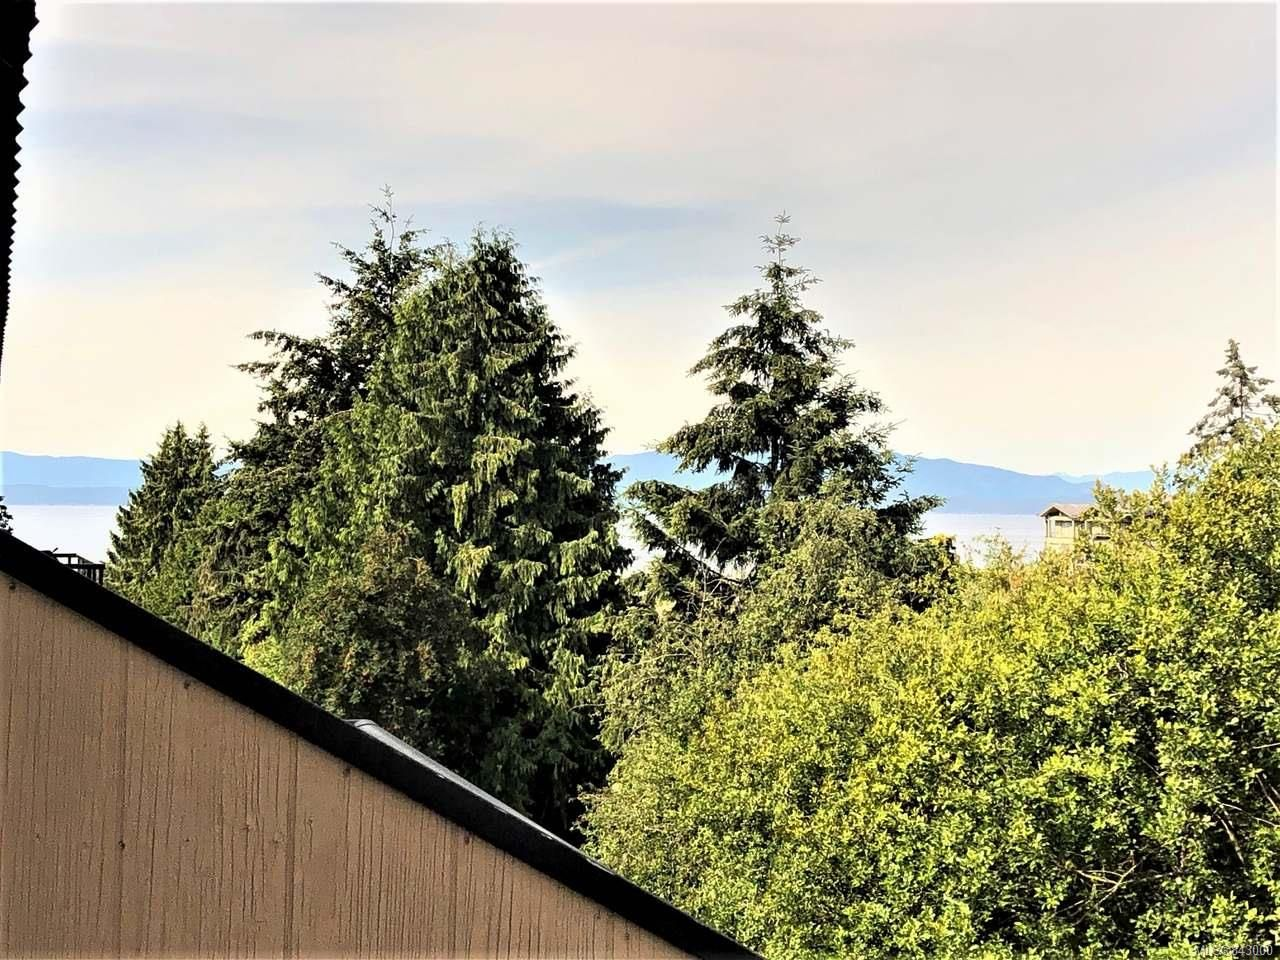 Photo 13: Photos: 405 255 W Hirst Ave in PARKSVILLE: PQ Parksville Condo for sale (Parksville/Qualicum)  : MLS®# 843000